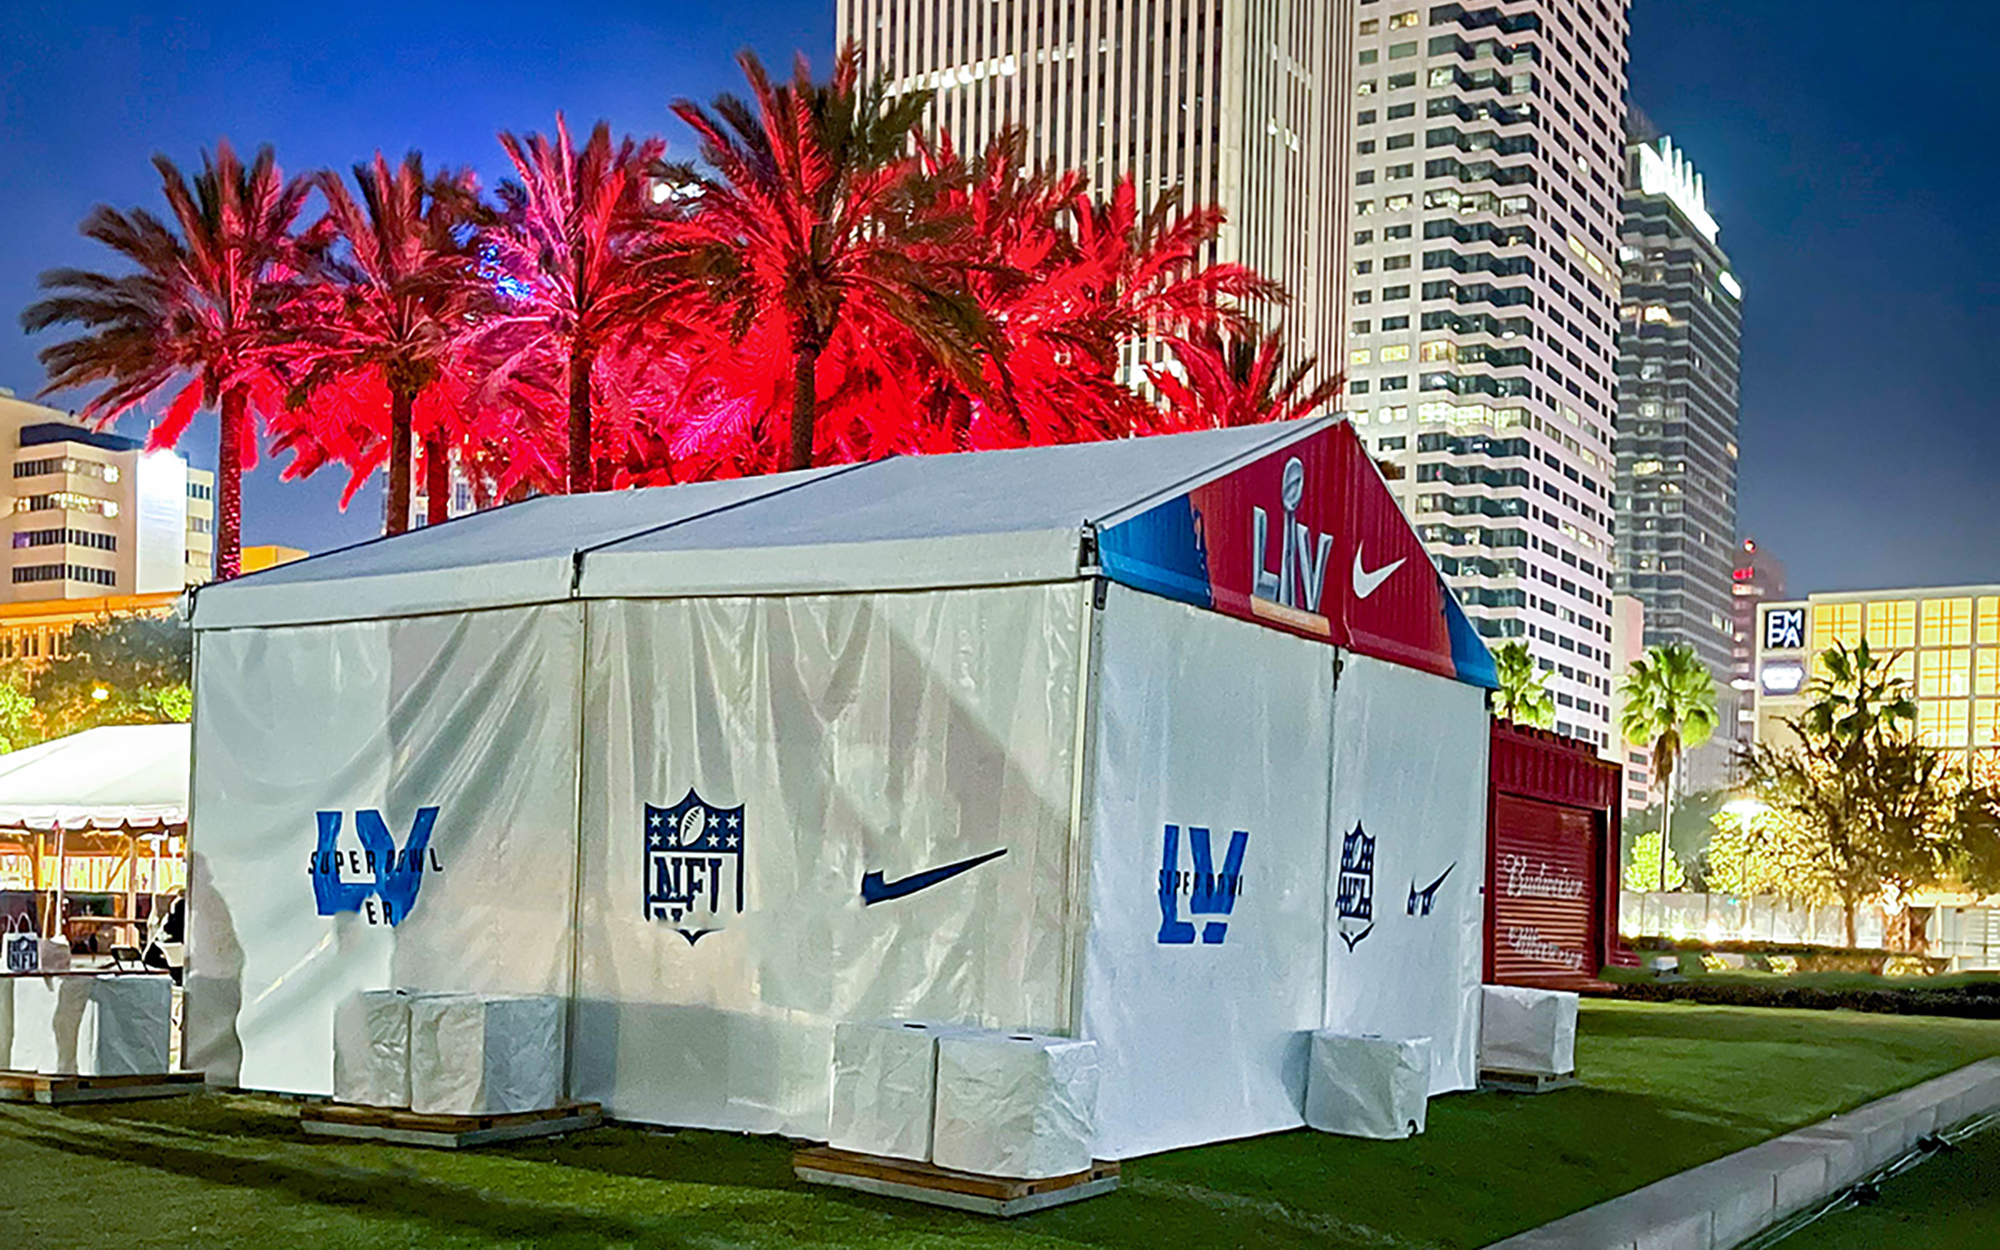 An in-process shot of Decal Doodle's tent-graphic job at this year's Super Bowl LV in Tampa, FL.